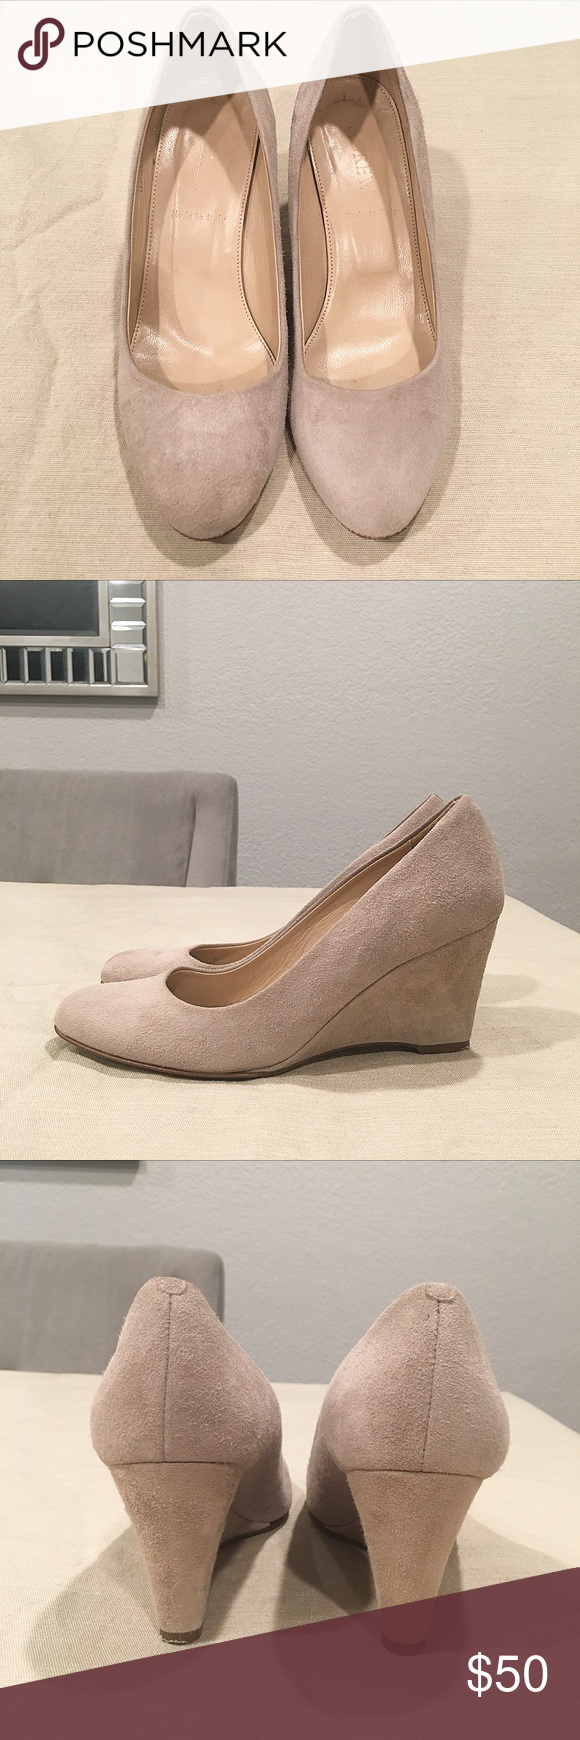 """J.Crew Martina Suede Wedges J.Crew Martina Suede Wedges in Pale Thistle. Streamlined, sculptural, stylish and comfortable. Styled in supple Italian suede. 3"""" heel with cushioned insole. Made in Italy. Suede in excellent condition. J. Crew Shoes Wedges"""